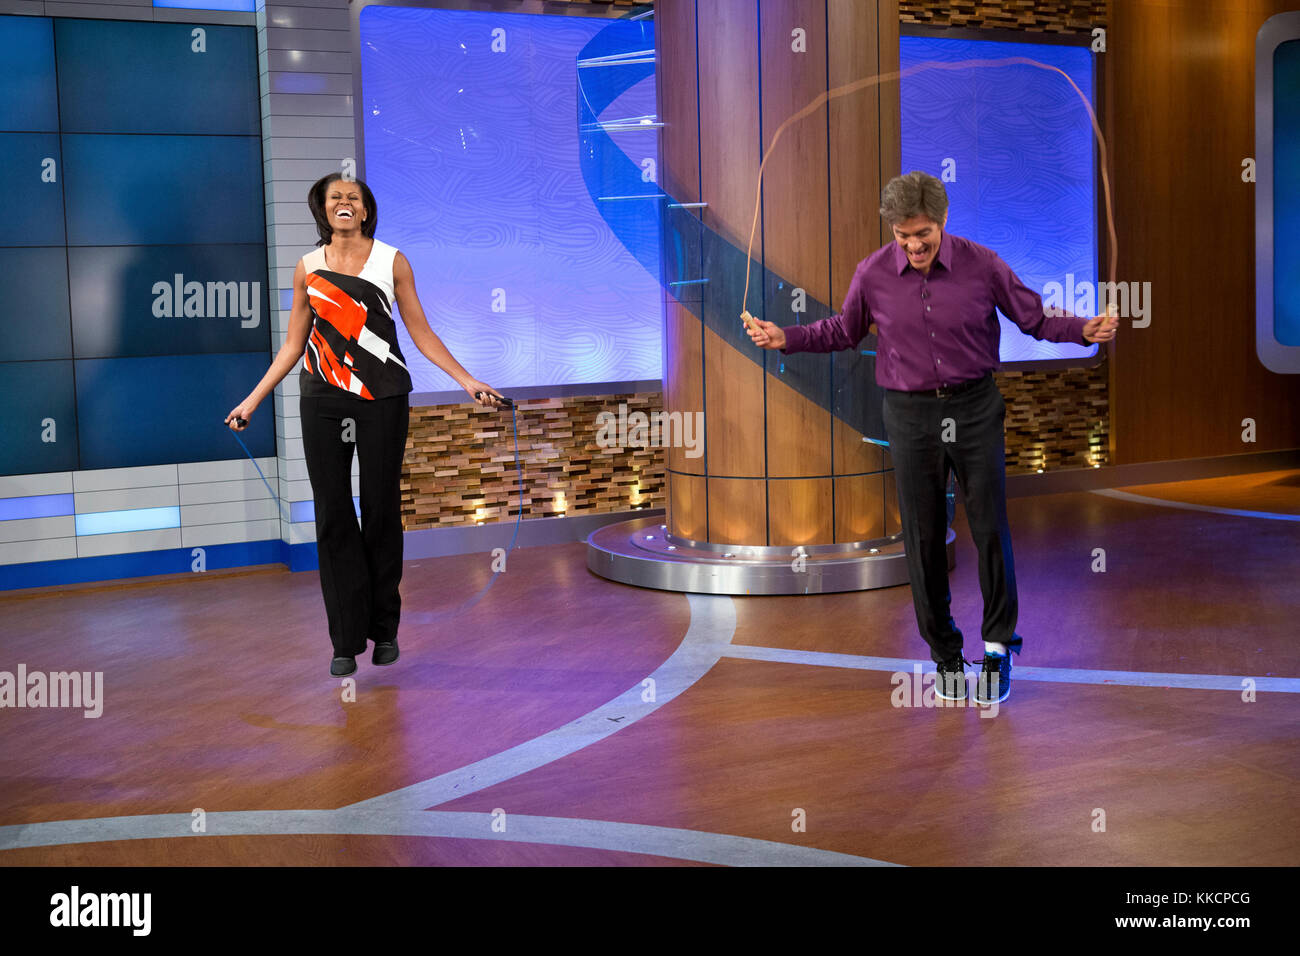 """First Lady Michelle Obama and Dr. Mehmet Oz jump rope during a taping of the """"Dr. Oz Show,"""" at the Dr. Oz Studio - Stock Image"""